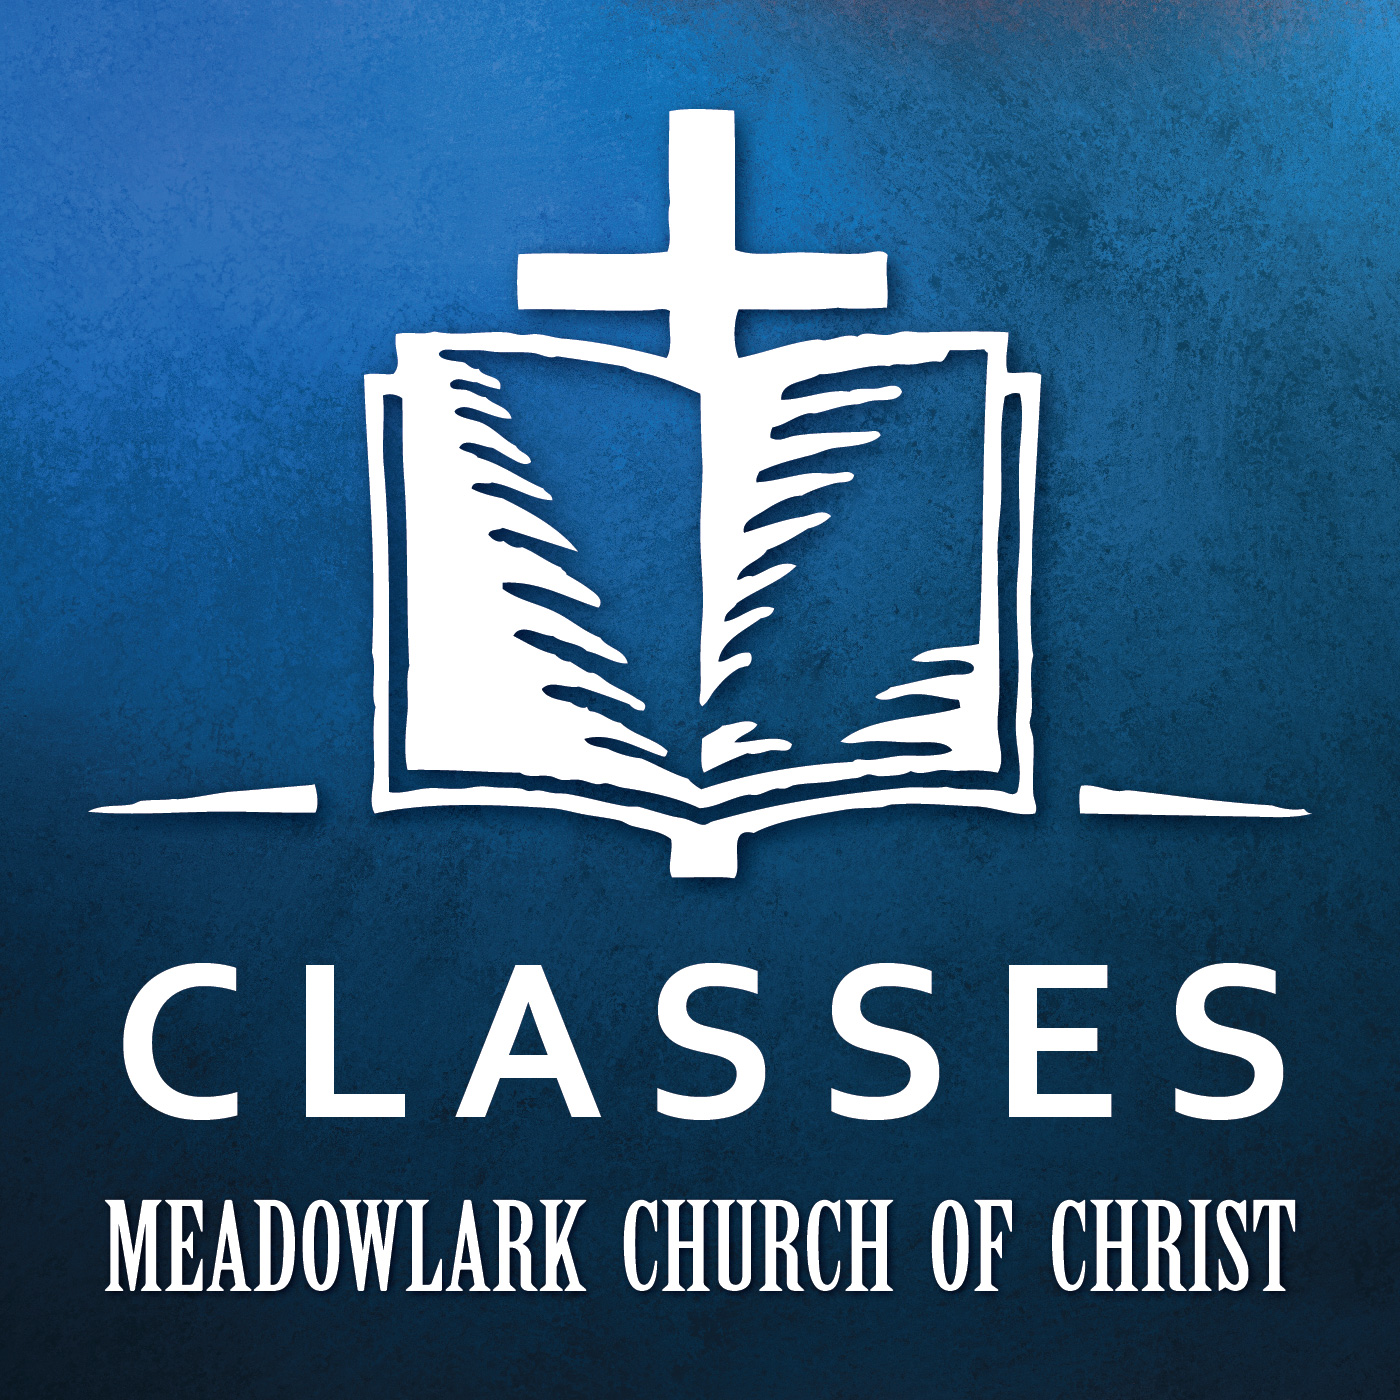 Meadowlark Church of Christ - Classes